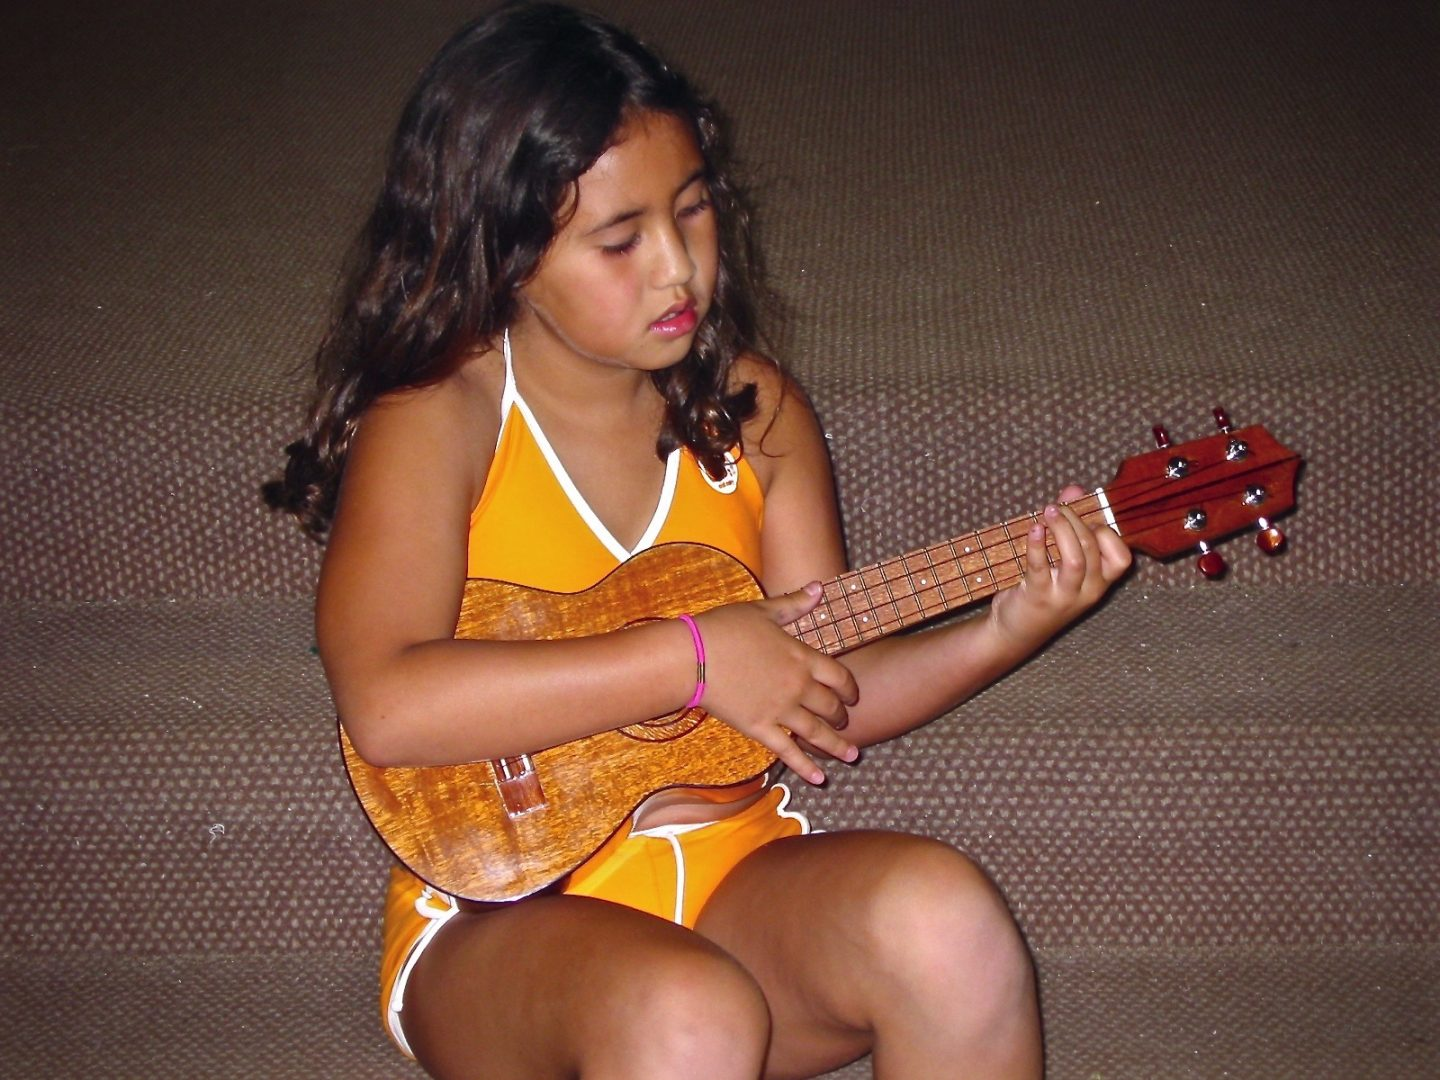 Me playing my first instrument